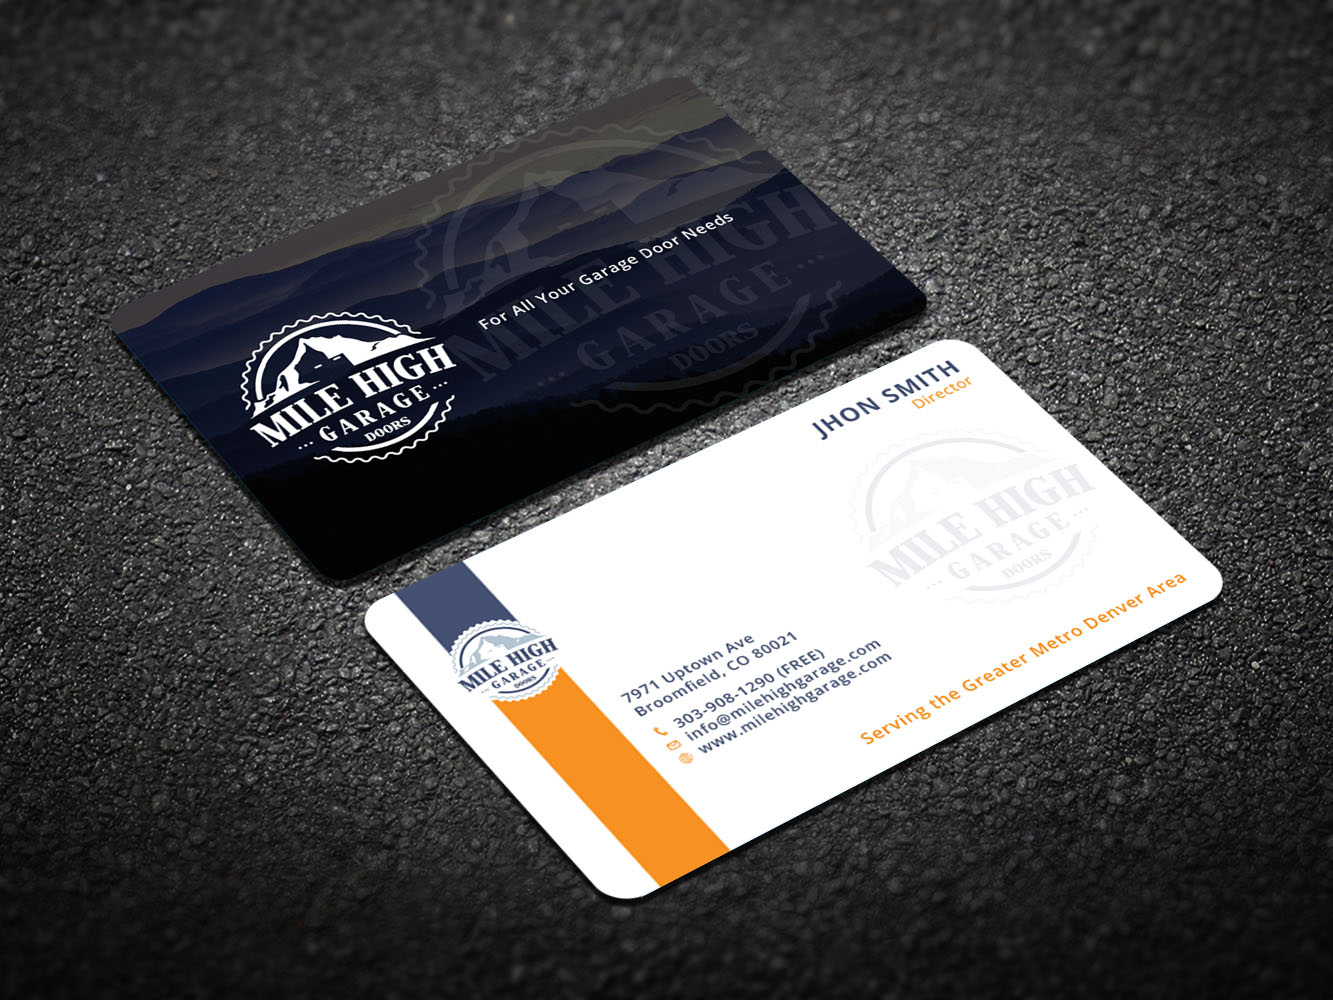 Business Card Design By Xeneration For Mile High Garage Door S Repair